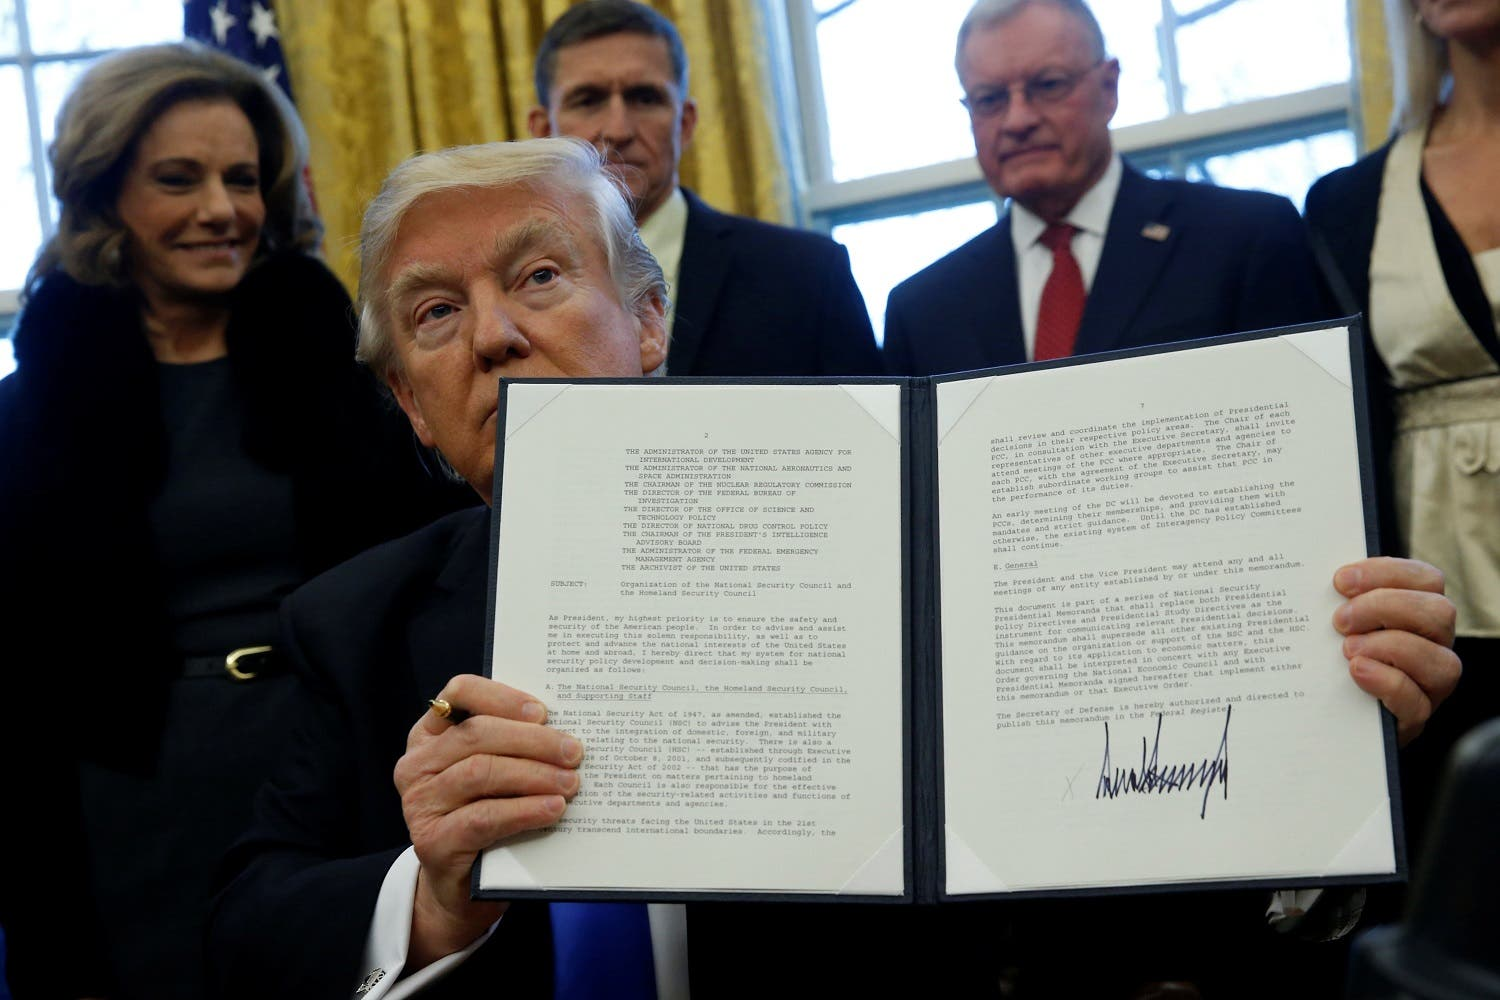 Trump holds an executive order dealing with the structure of the National Security Council after signing it in the Oval Office at the White House in Washington, US January 28, 2017 – his 100 days have seen him signing a number of executive orders (Photo: Reuters/Jonathan Ernst)